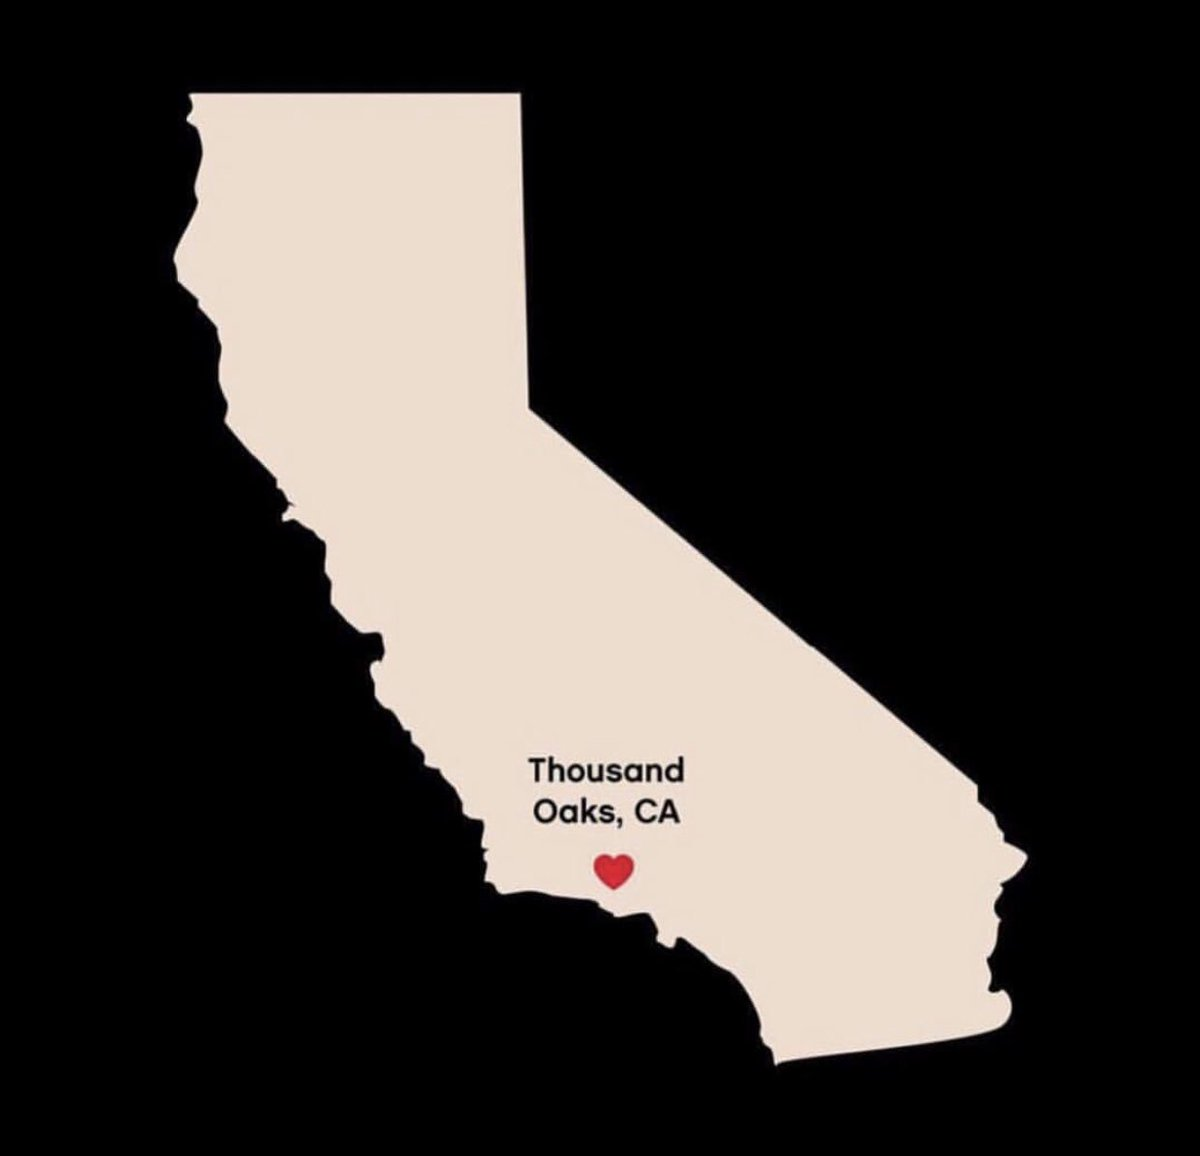 my heart is with you, Thousand Oaks 💔